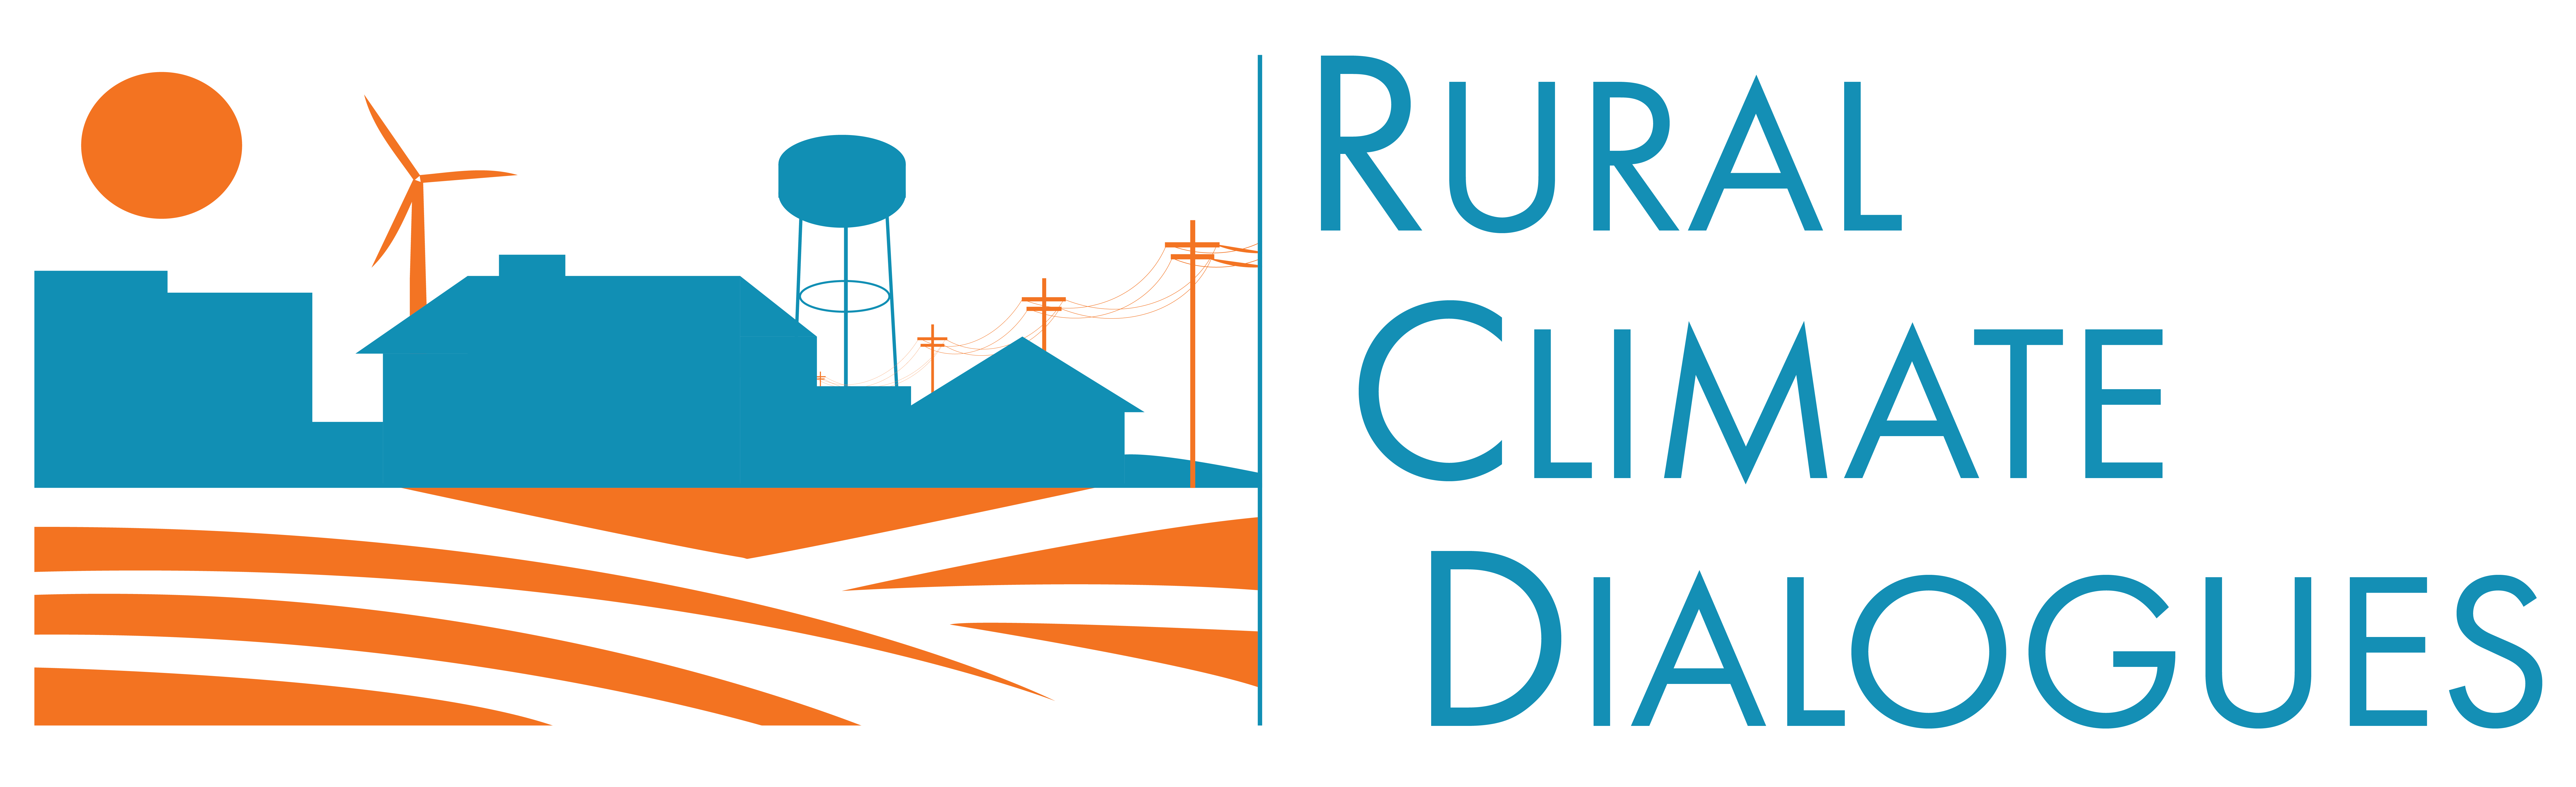 Rural Climate Dialogues